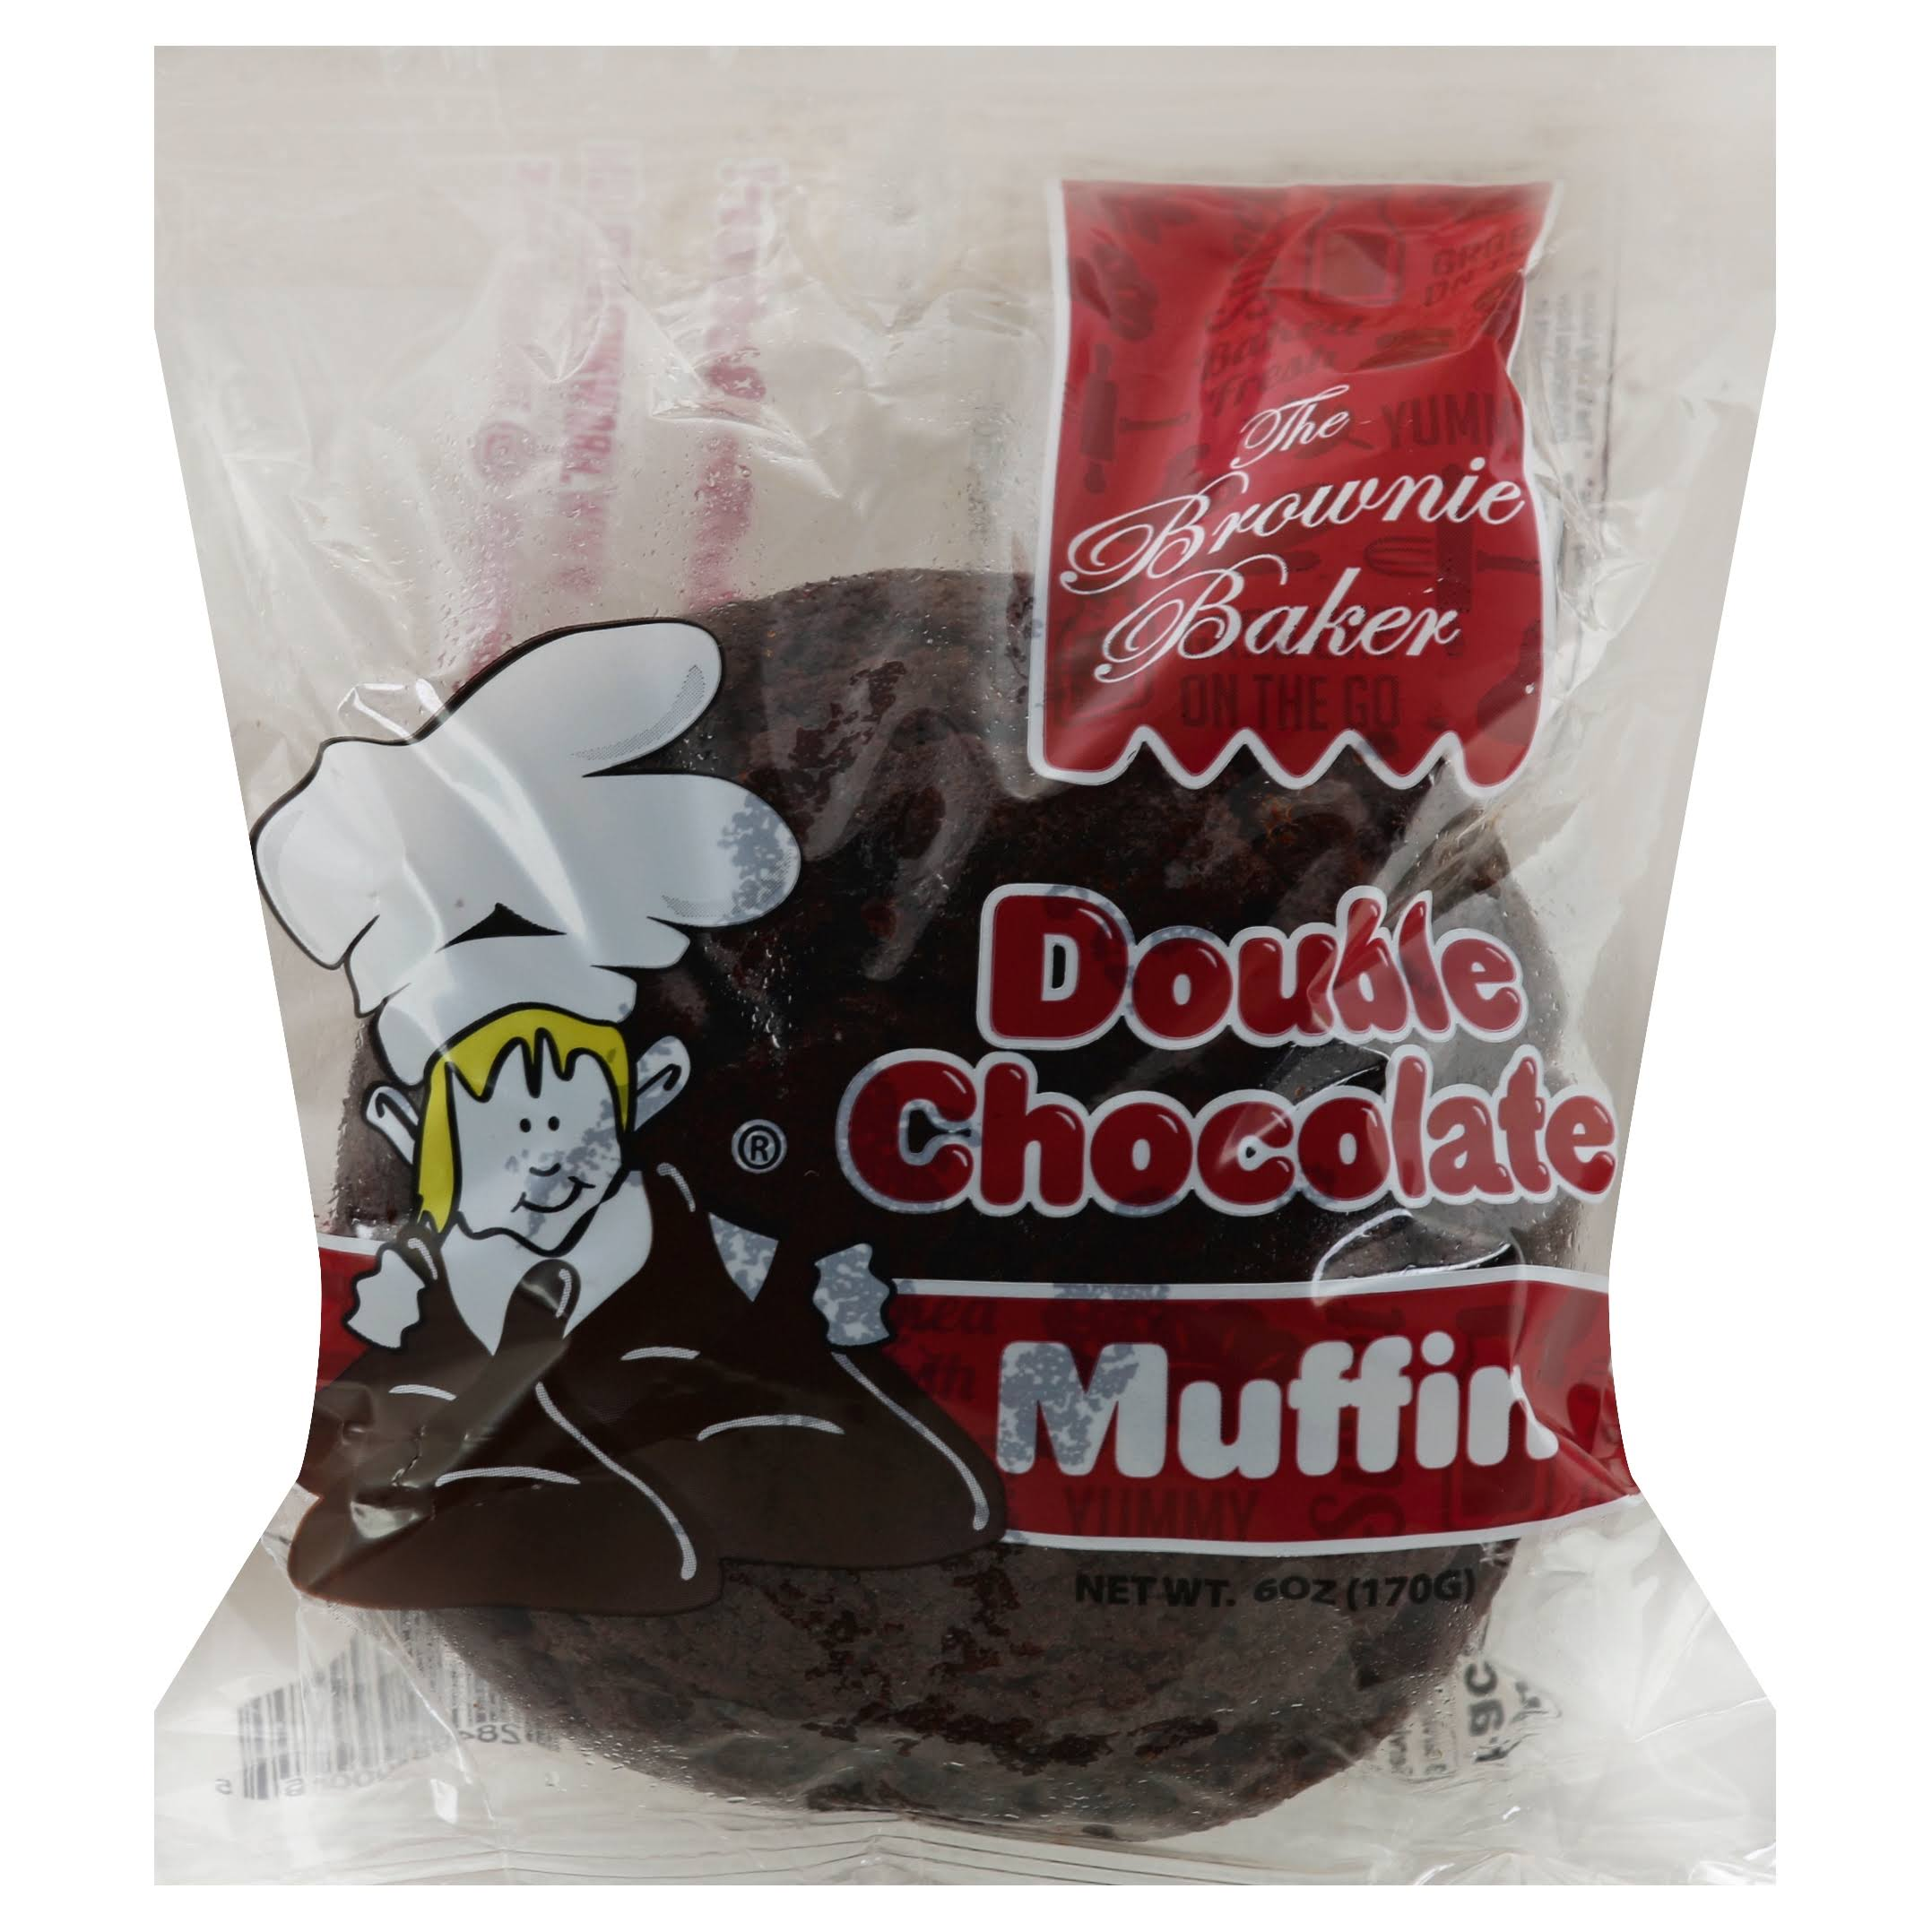 Brownie Baker Muffin, Double Chocolate - 6 oz